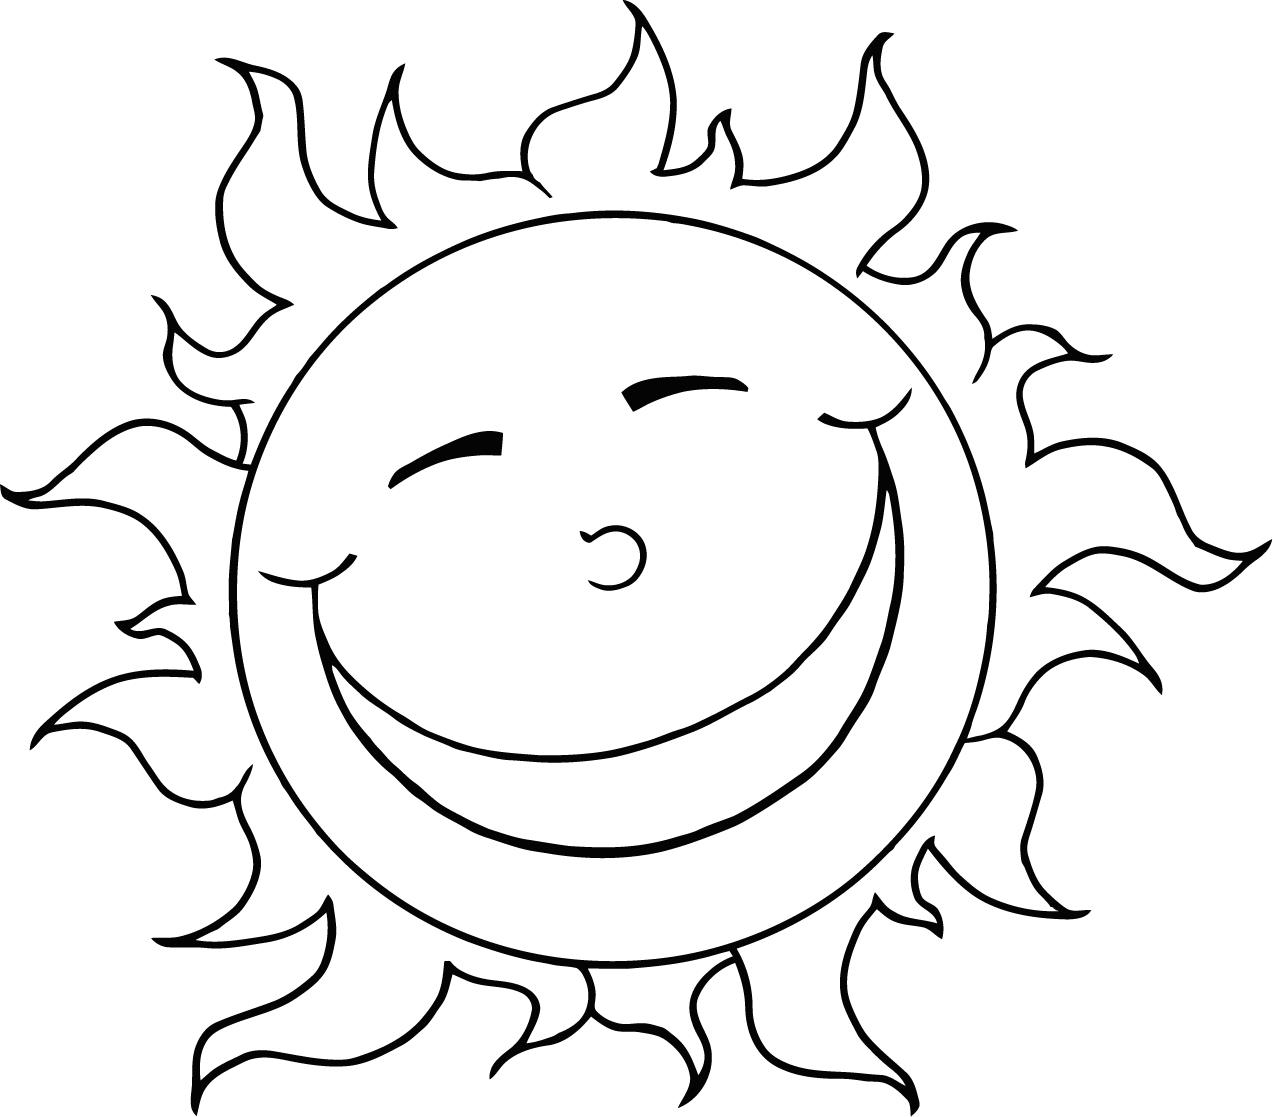 Coloring Pages For Kids Printable : Free printable sun coloring pages for kids